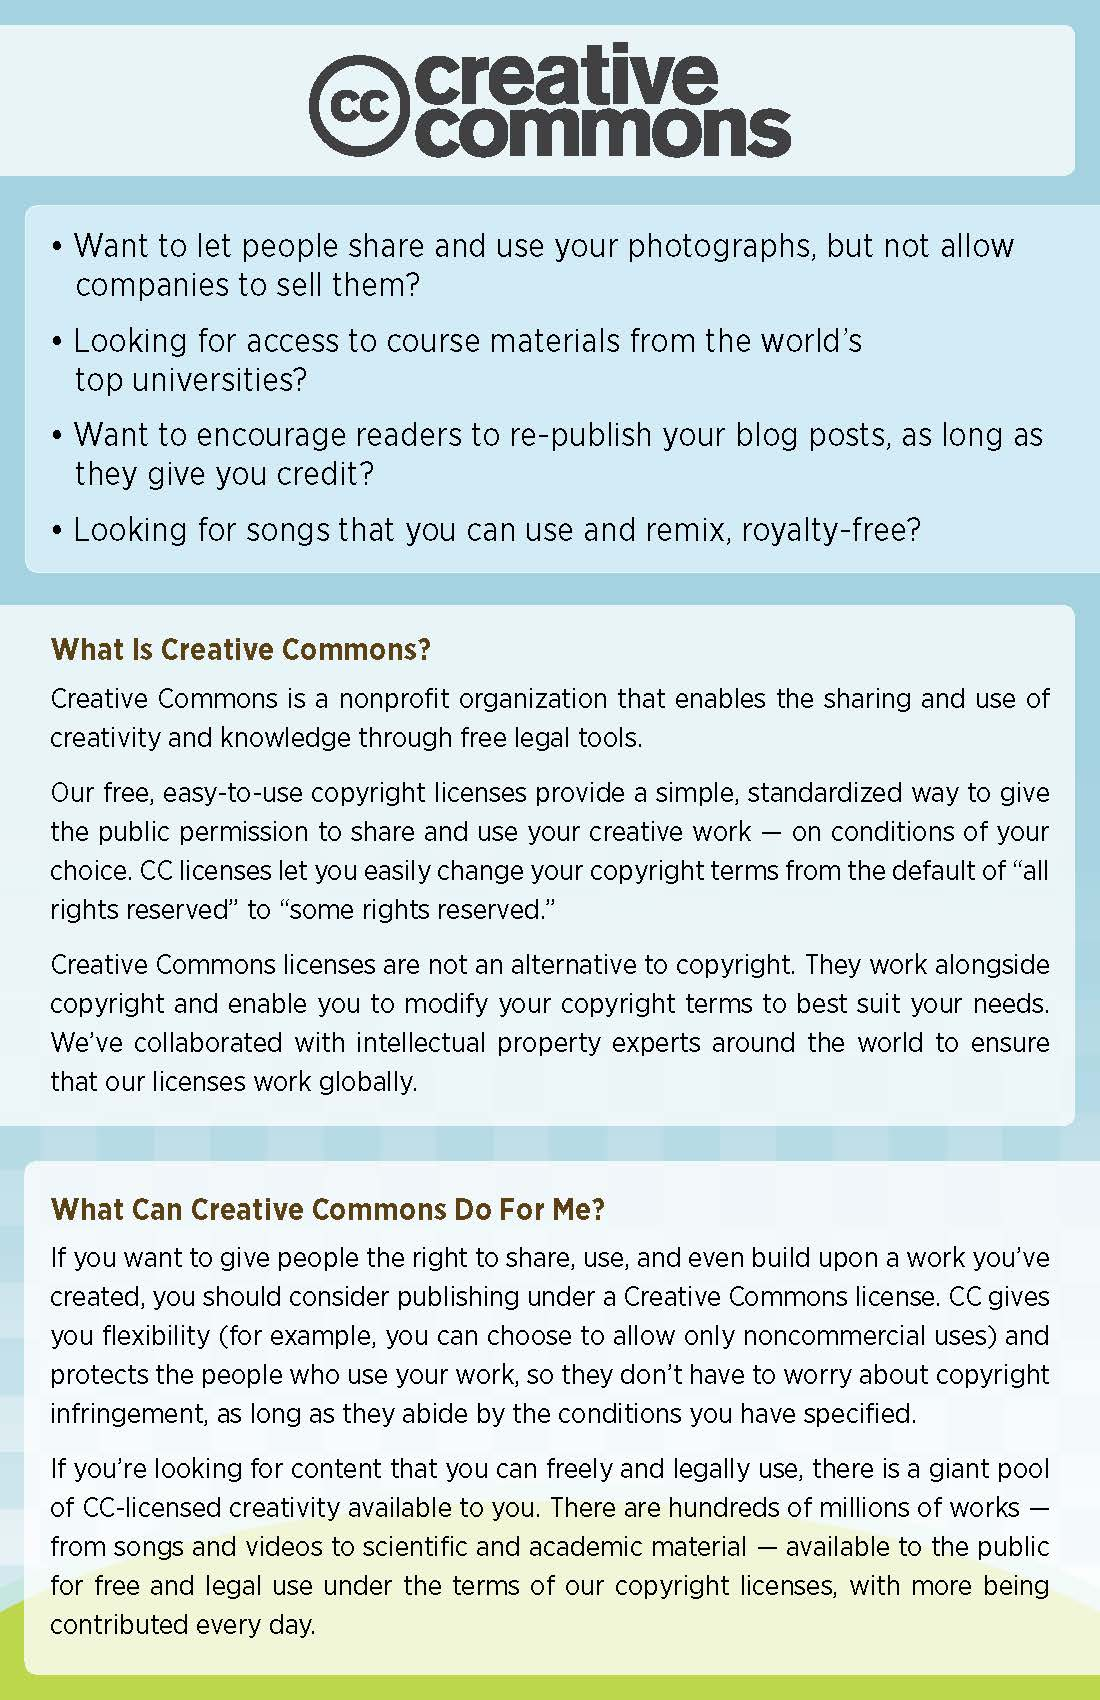 A full-text PDF of this image, titled What is Creative Commons?, can be found by clicking on the link below.